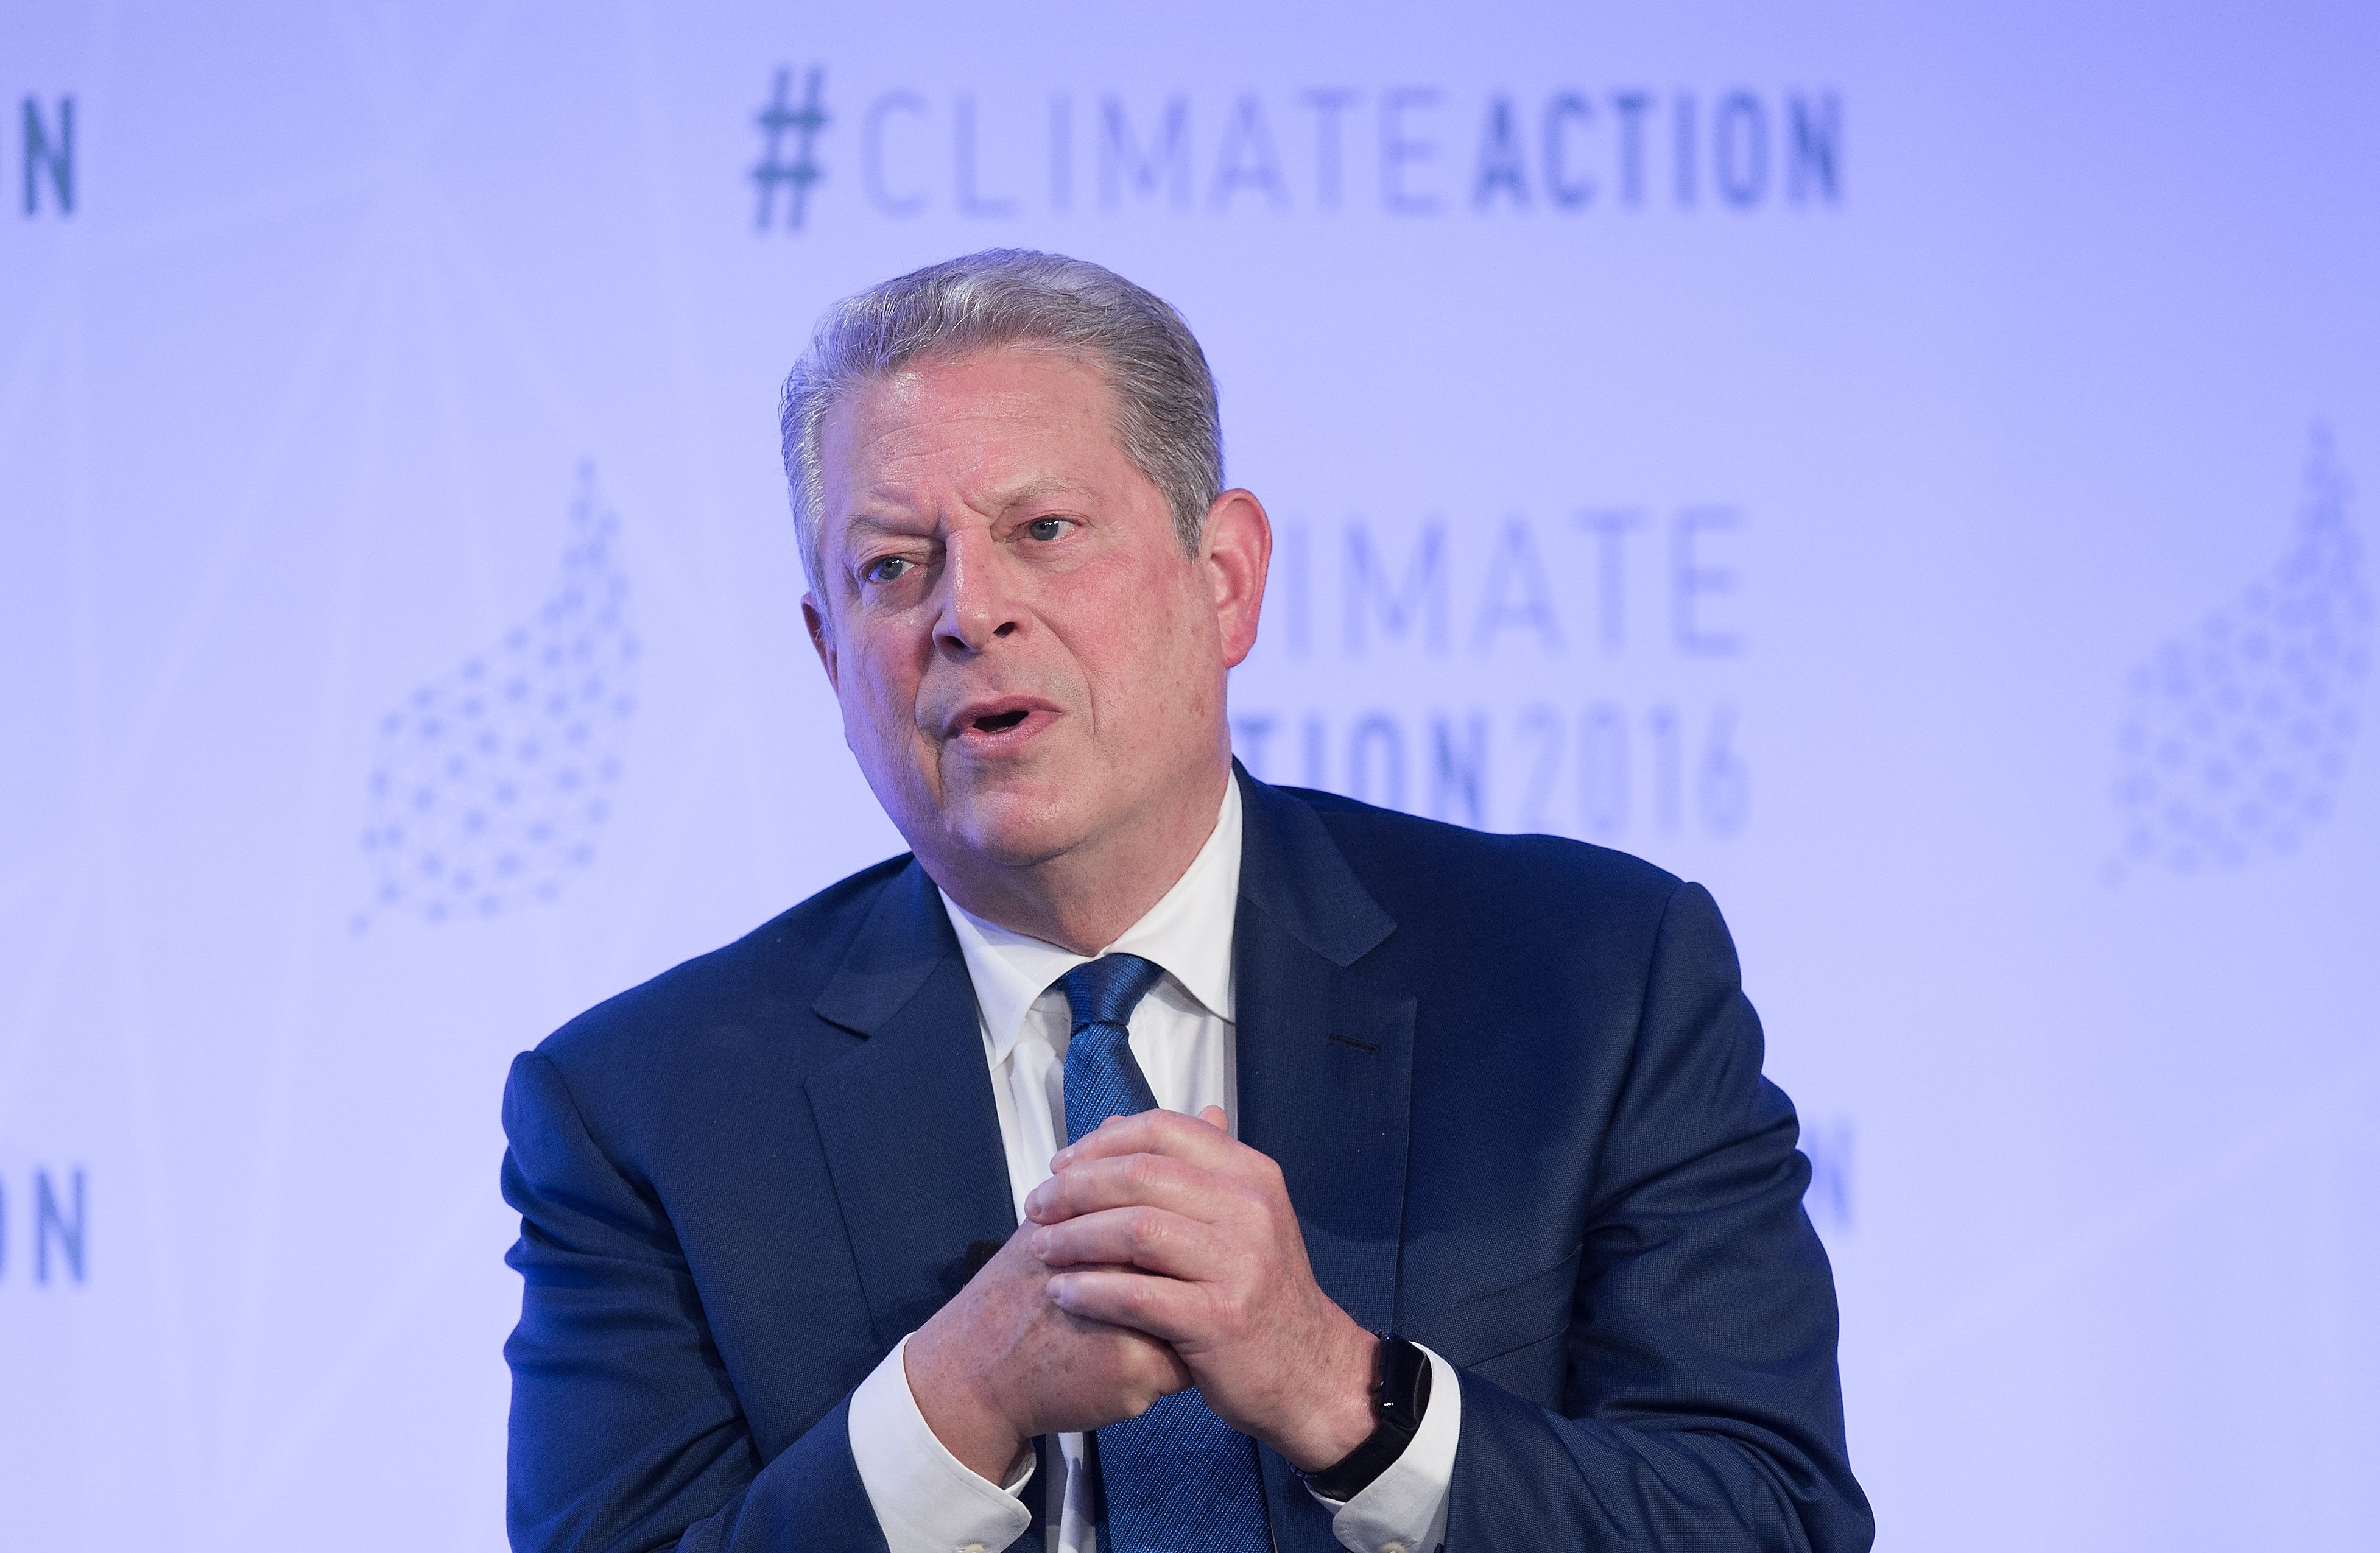 Al Gore speaking at environmental protection conference